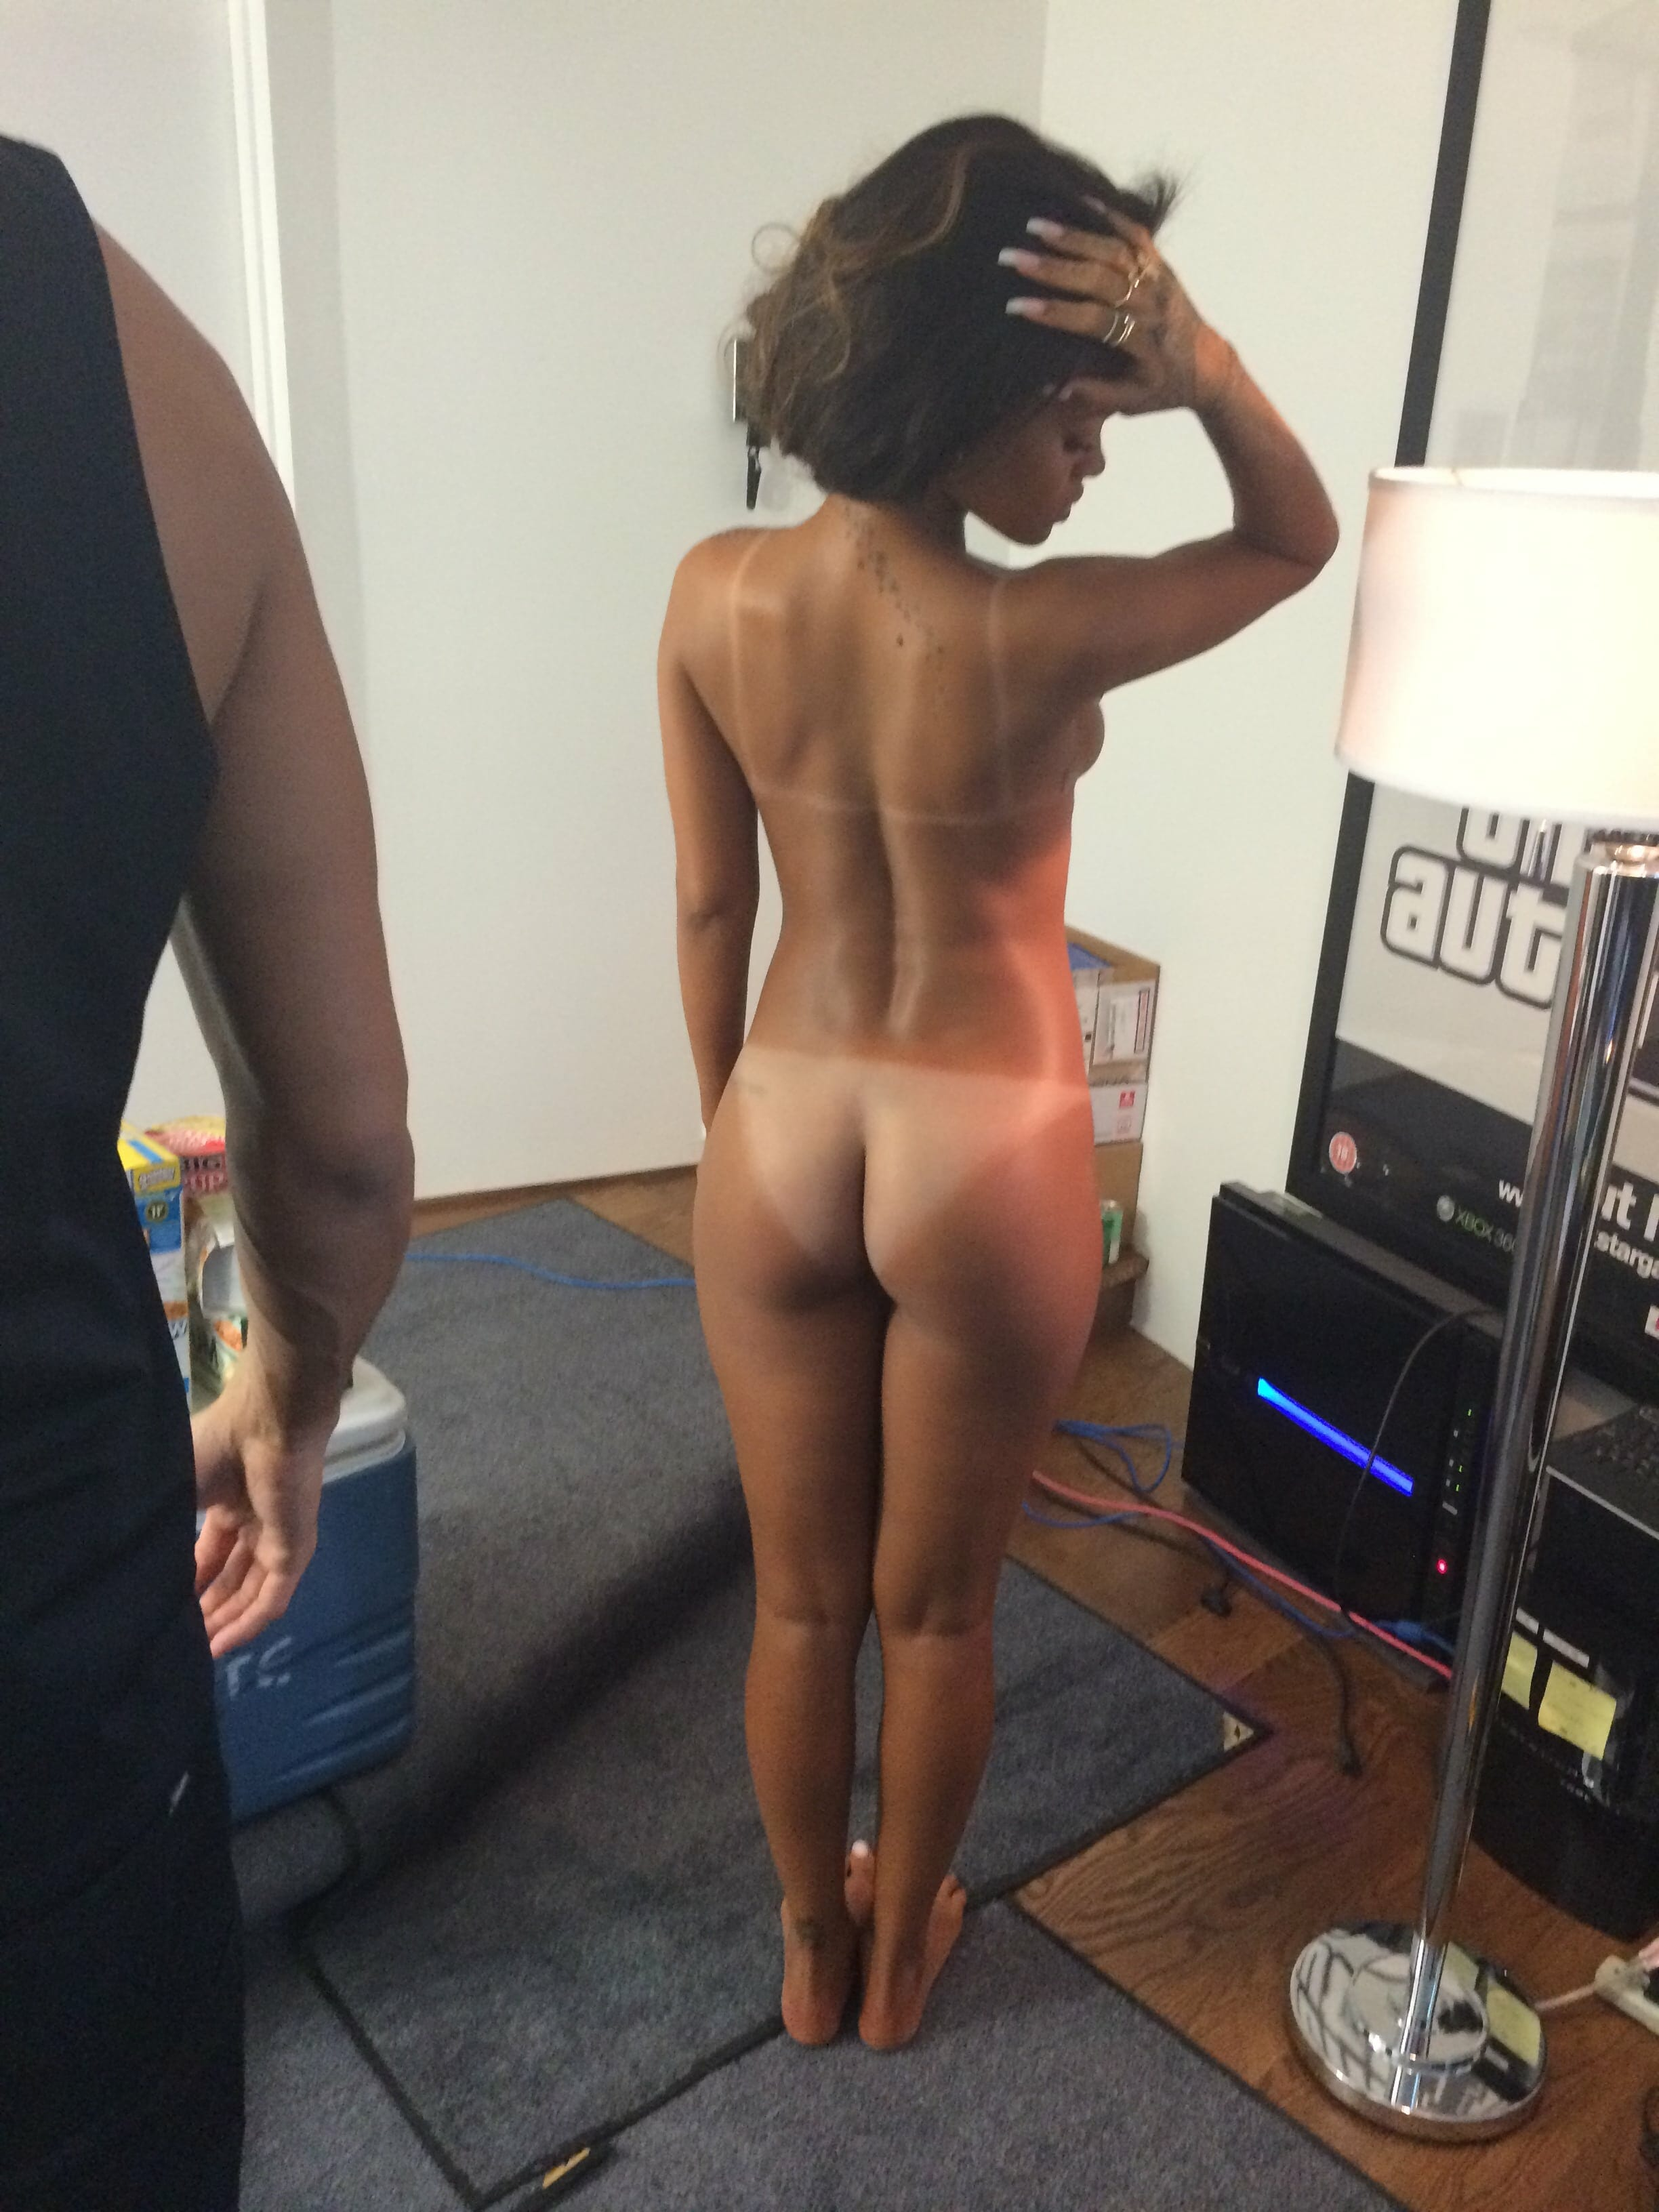 On rihanna balcony nude